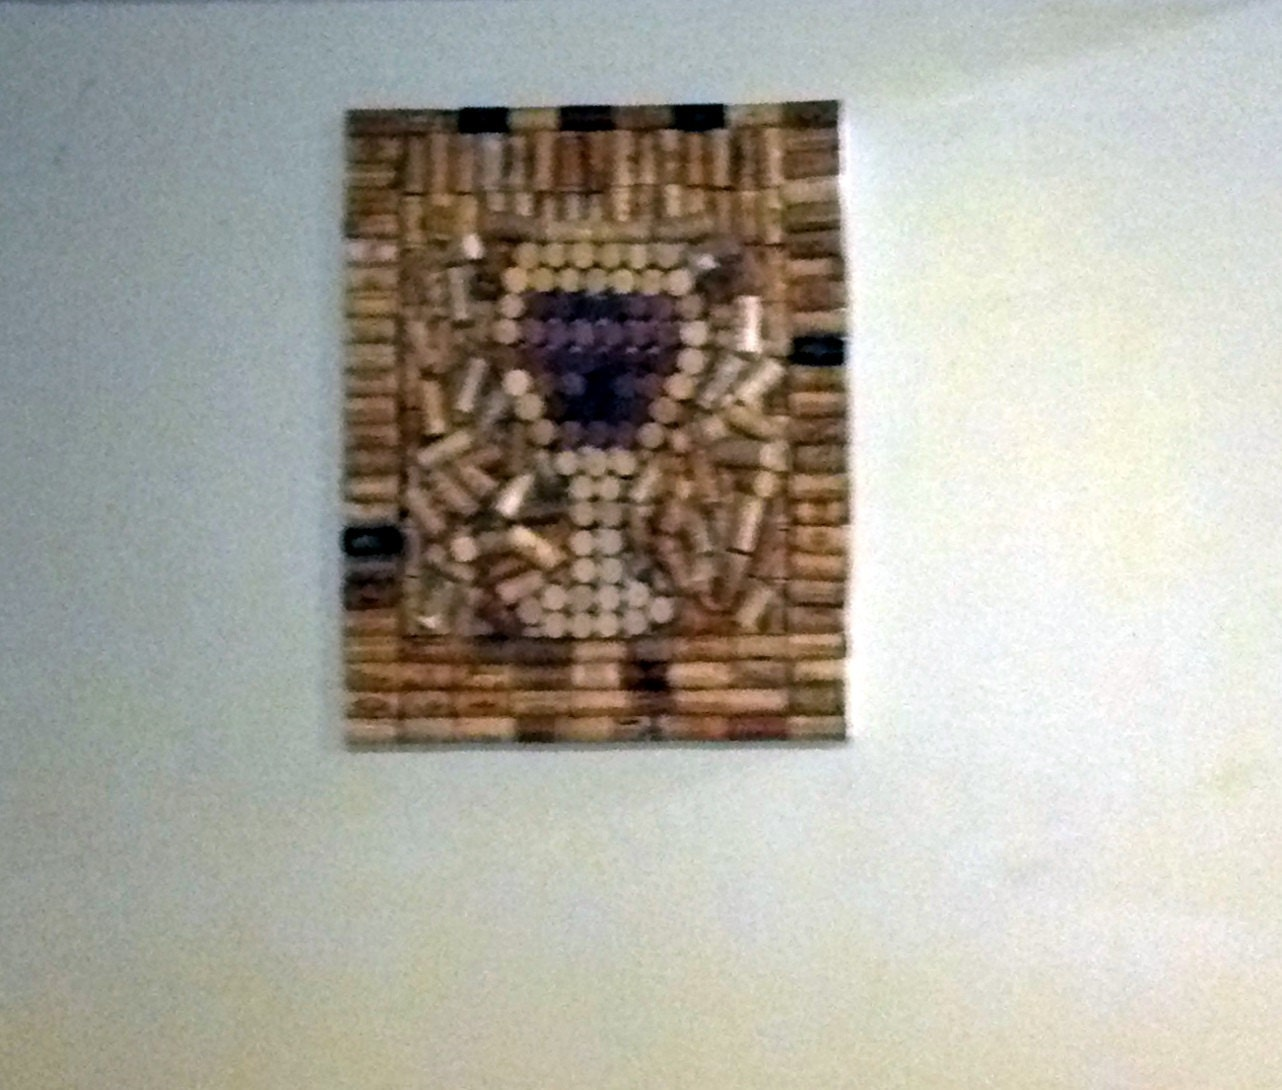 Items similar to Wine cork canvas wall decor on Etsy